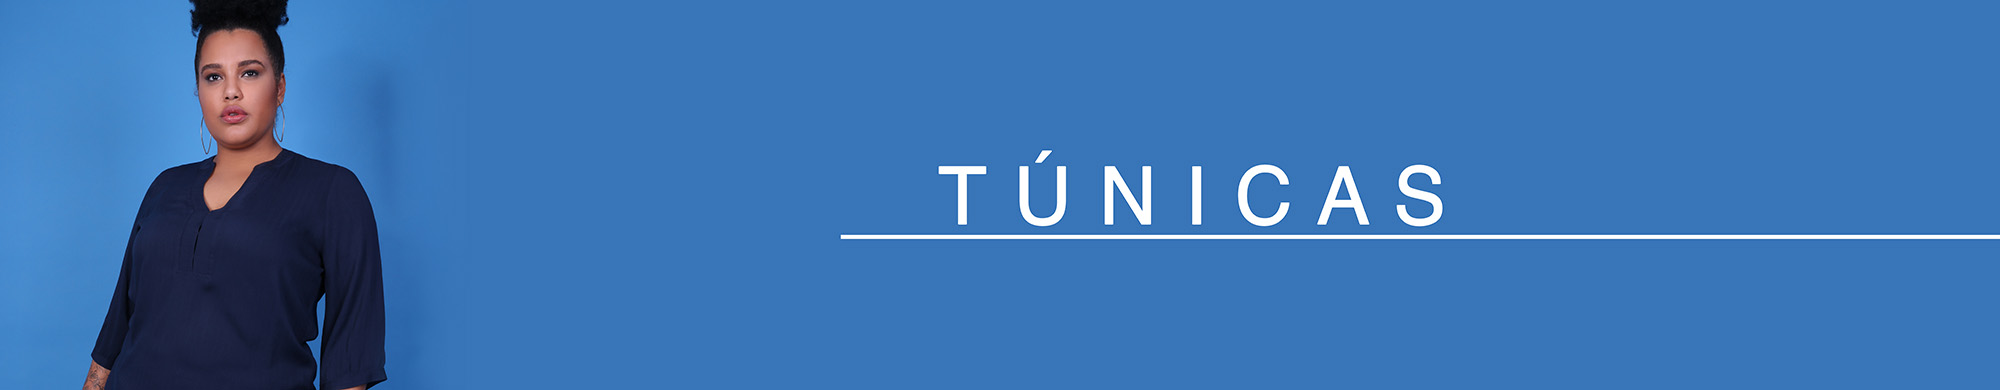 Banner-tunica